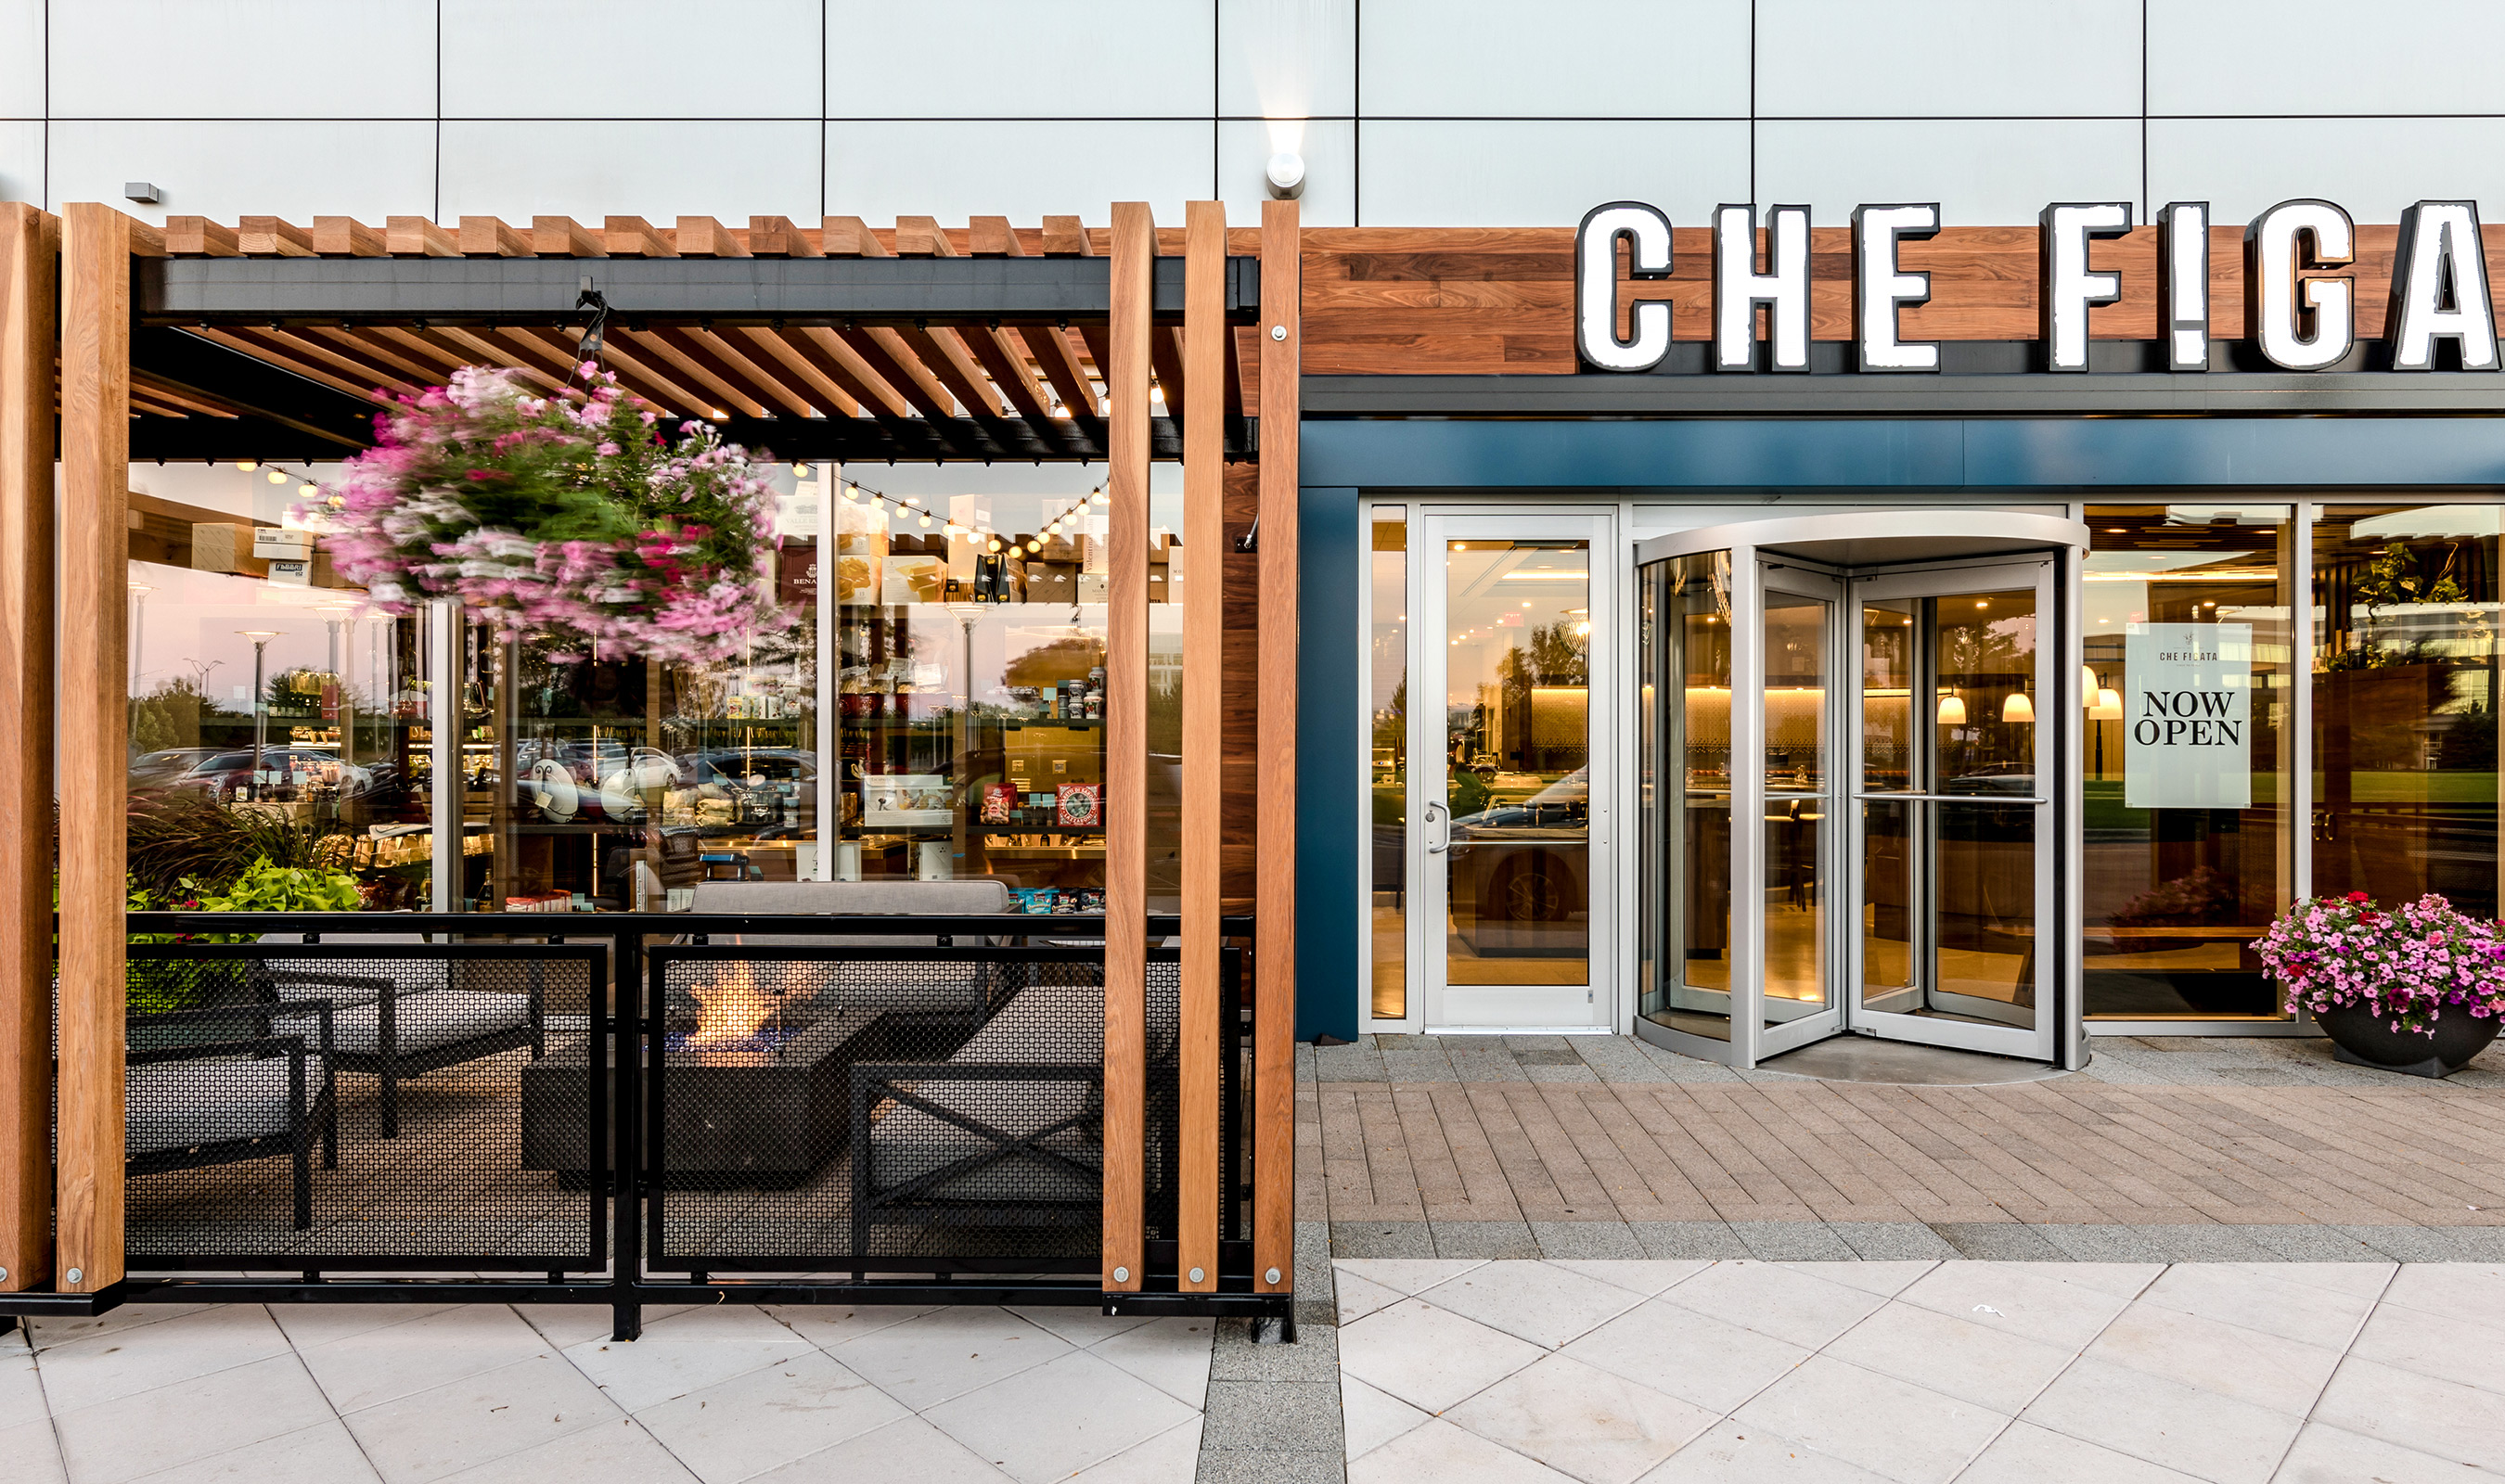 Che Figata utilizes Banker Wire's H-1 woven wire mesh as railing infill for it's stunning patio.